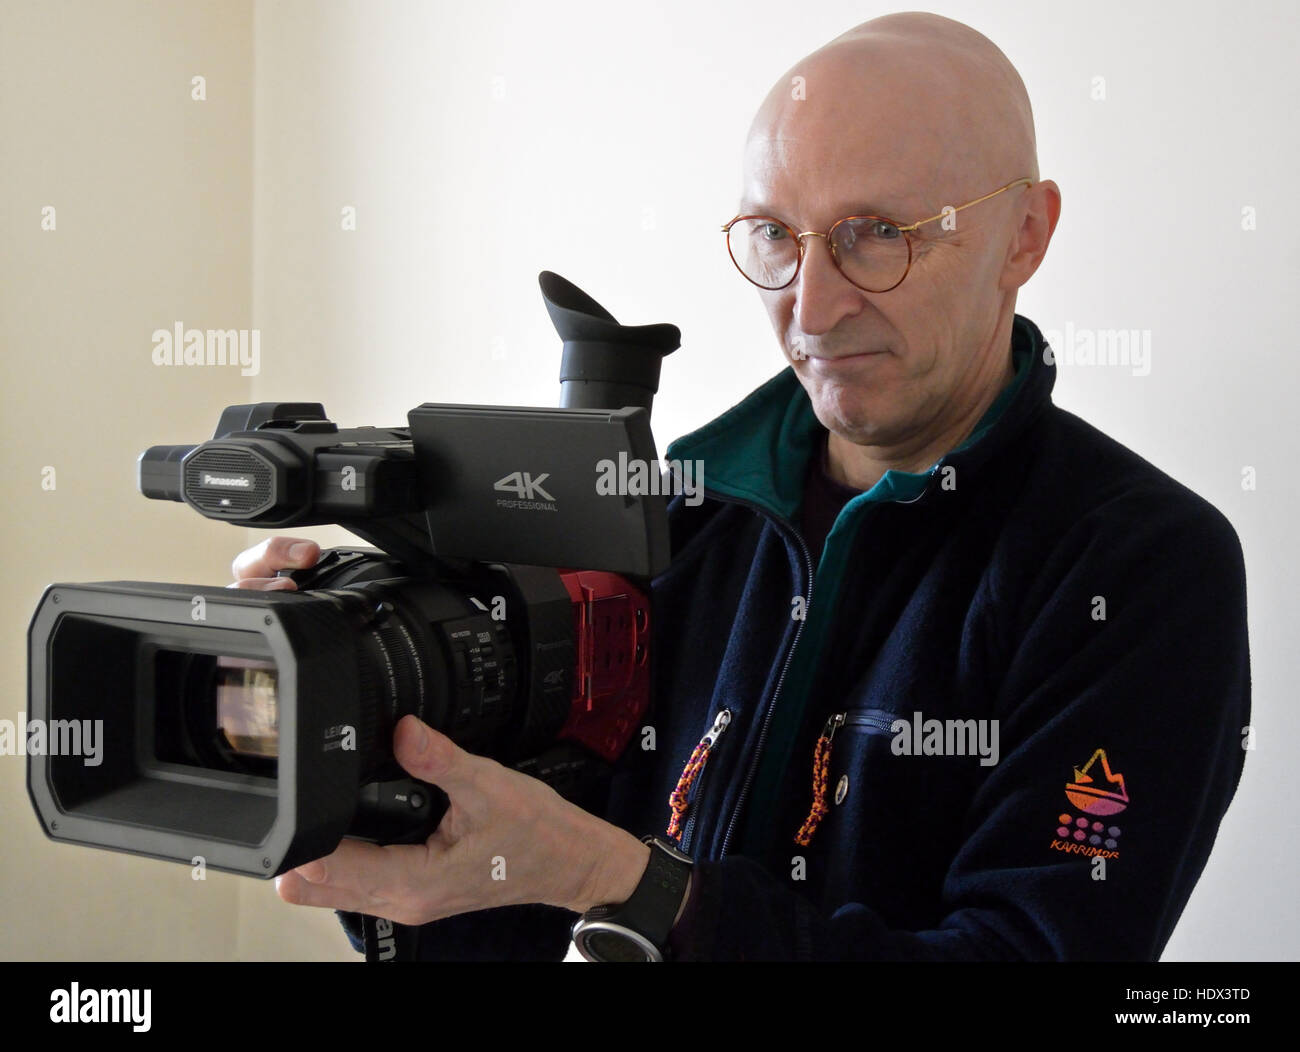 Clive Tully FRGS holding Panasonic AG-DVX200 professional video camera Stock Photo